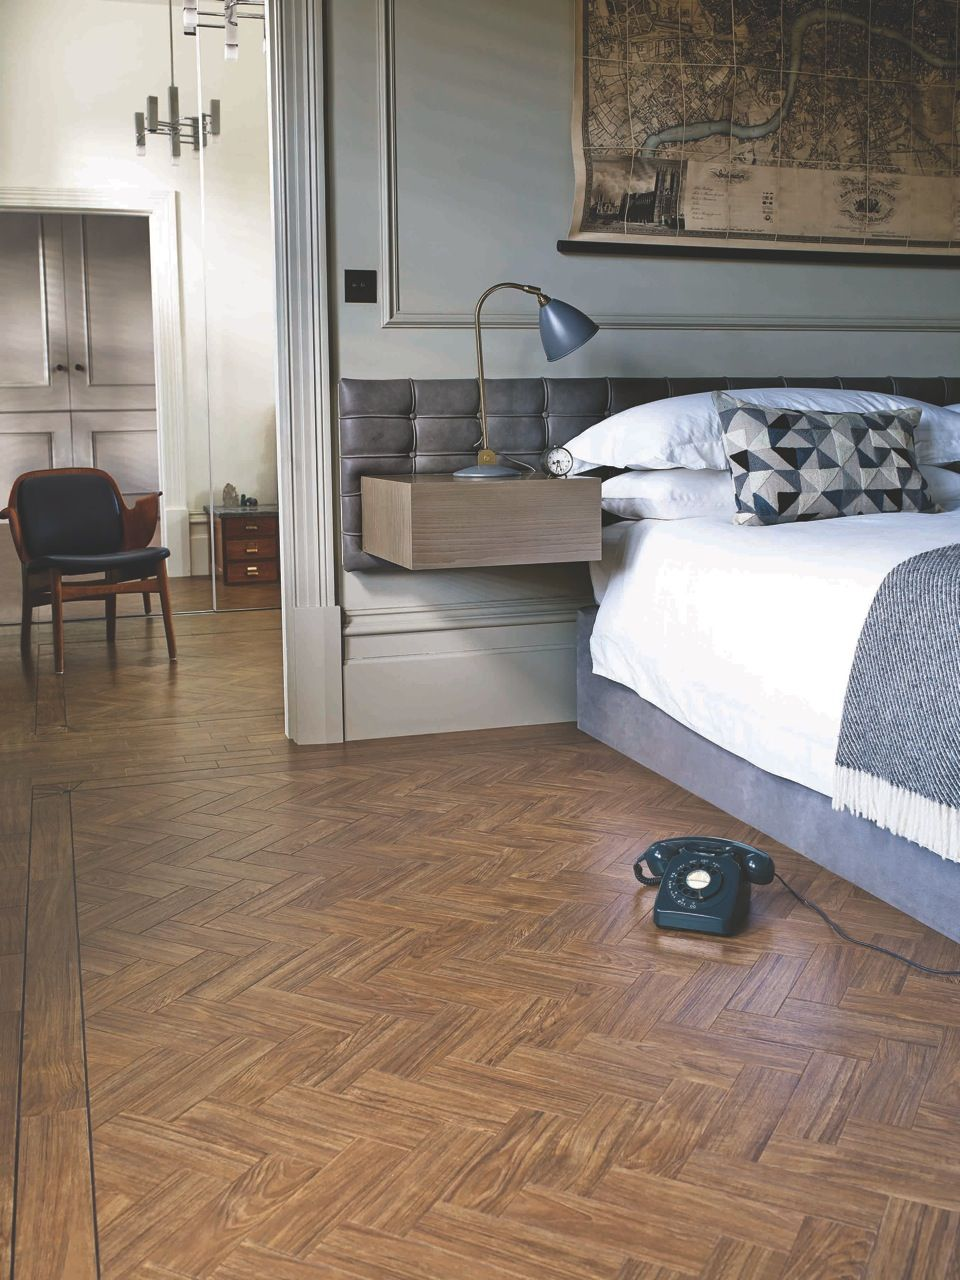 Inspiring flooring Amtico herringbone Bedroom flooring